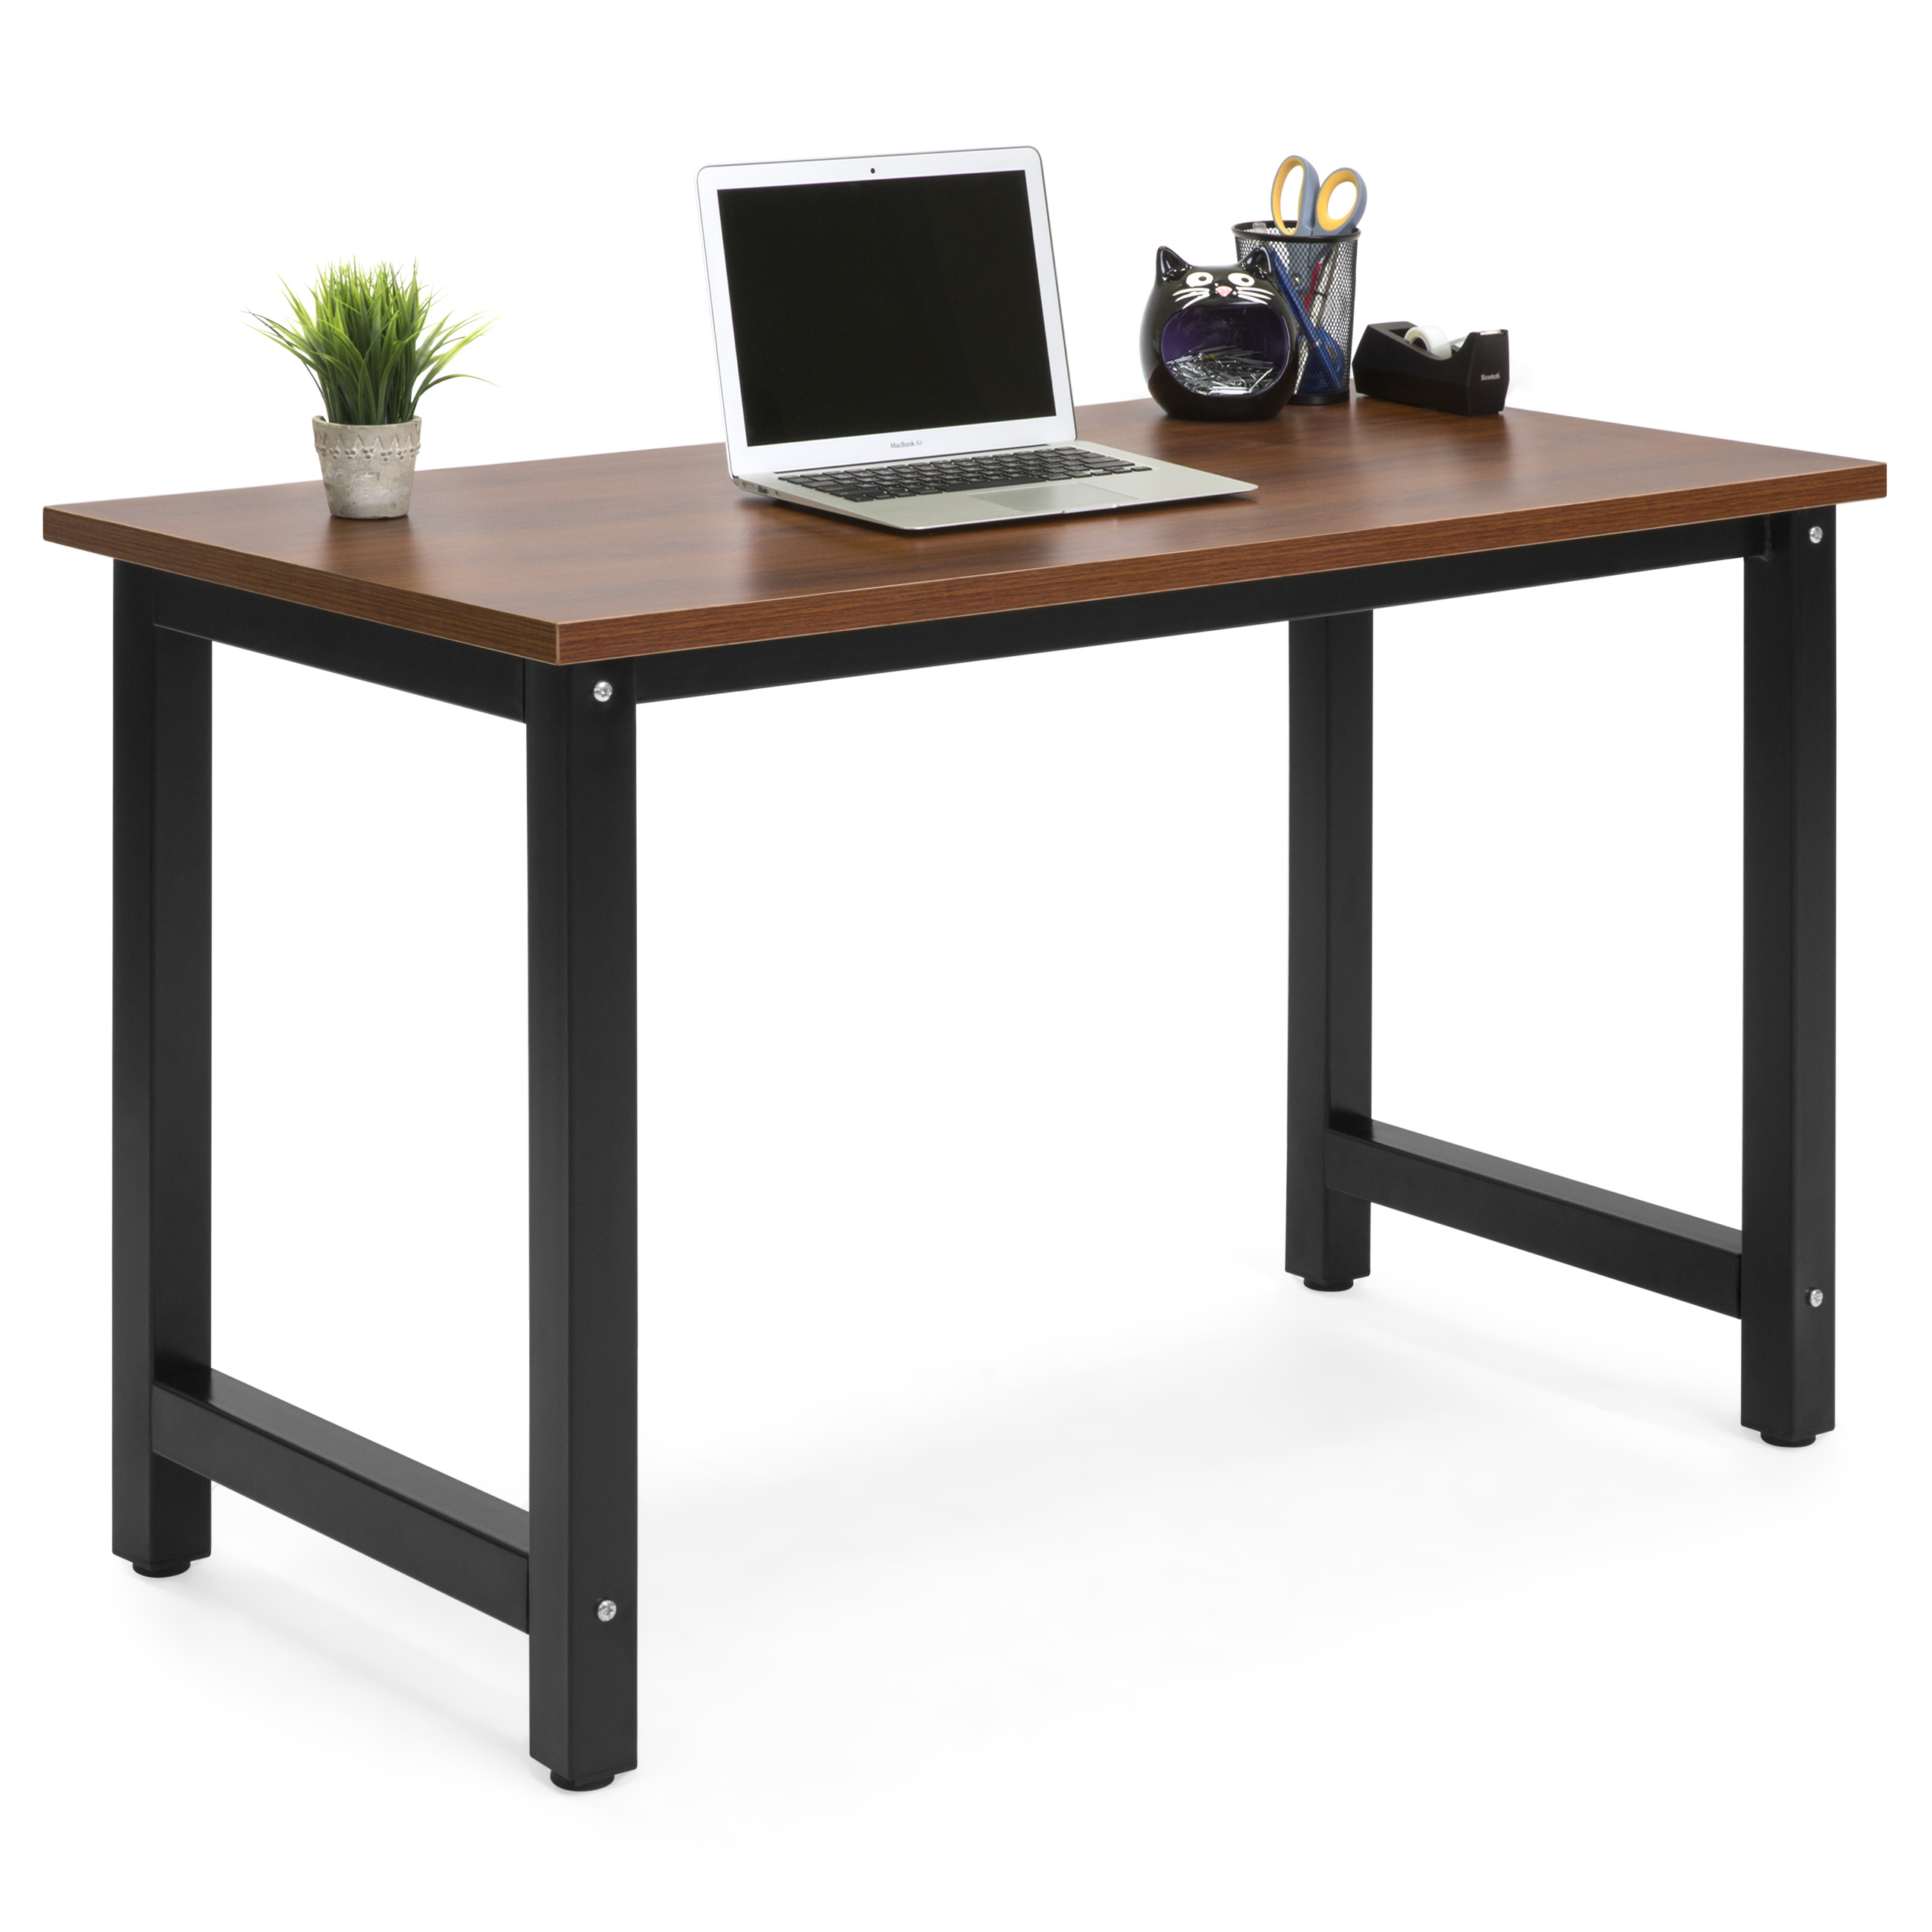 Ordinaire Best Choice Products Large Modern Computer Table Writing Desk Workstation  For Home And Offce   Brown